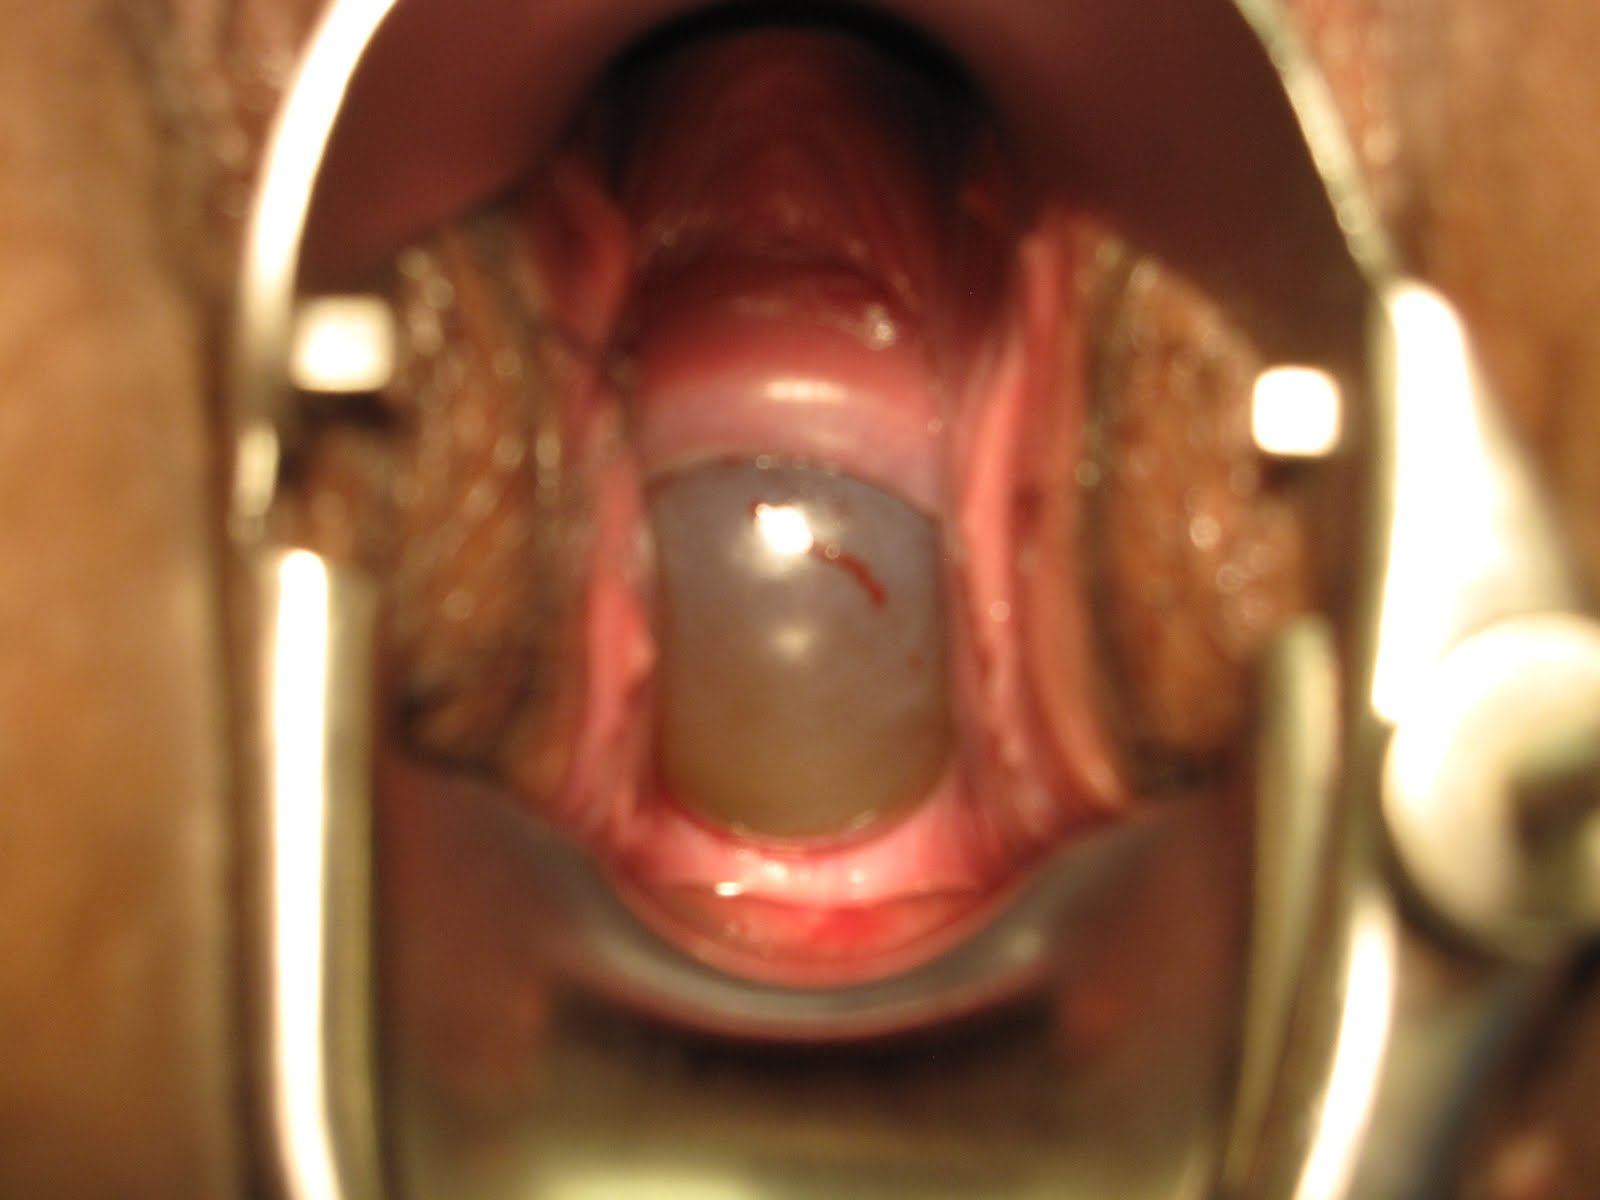 When the Cervix opens prematurely, take a look!